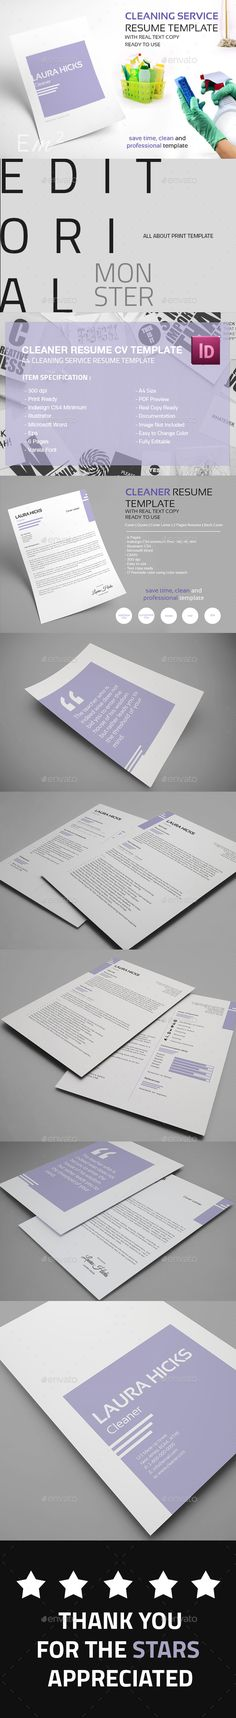 Clean Resume Template Corporate design, Brochures and Graphics - cleaner resume